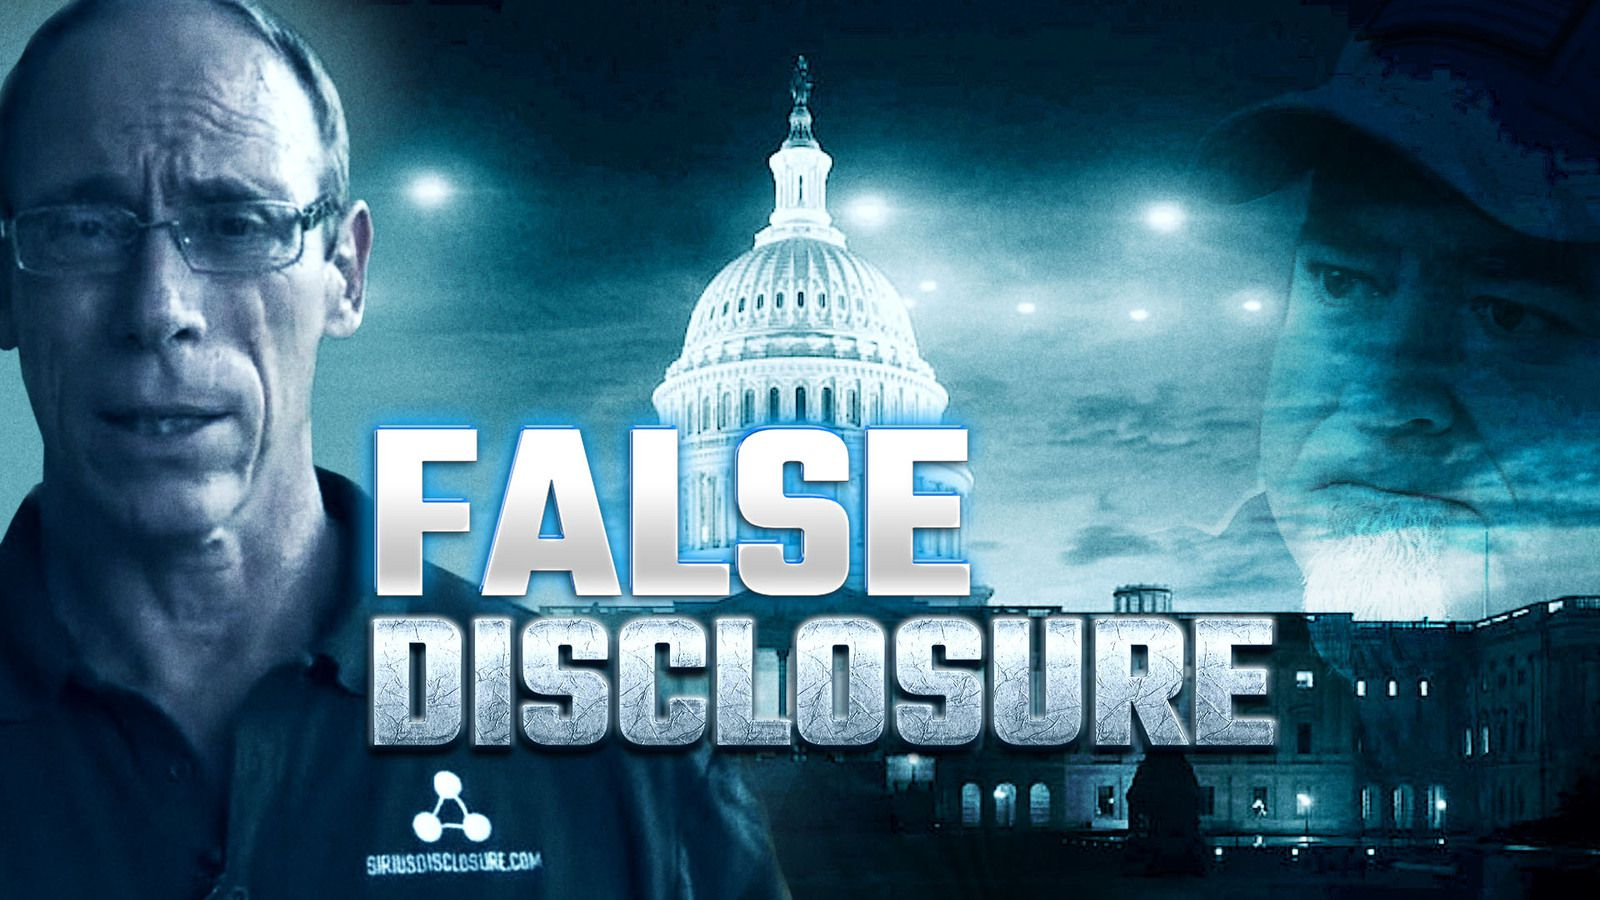 👽 Dr. STEVEN GREER makes an Update on ongoing False Disclosure - We must stop the BIG LIE !